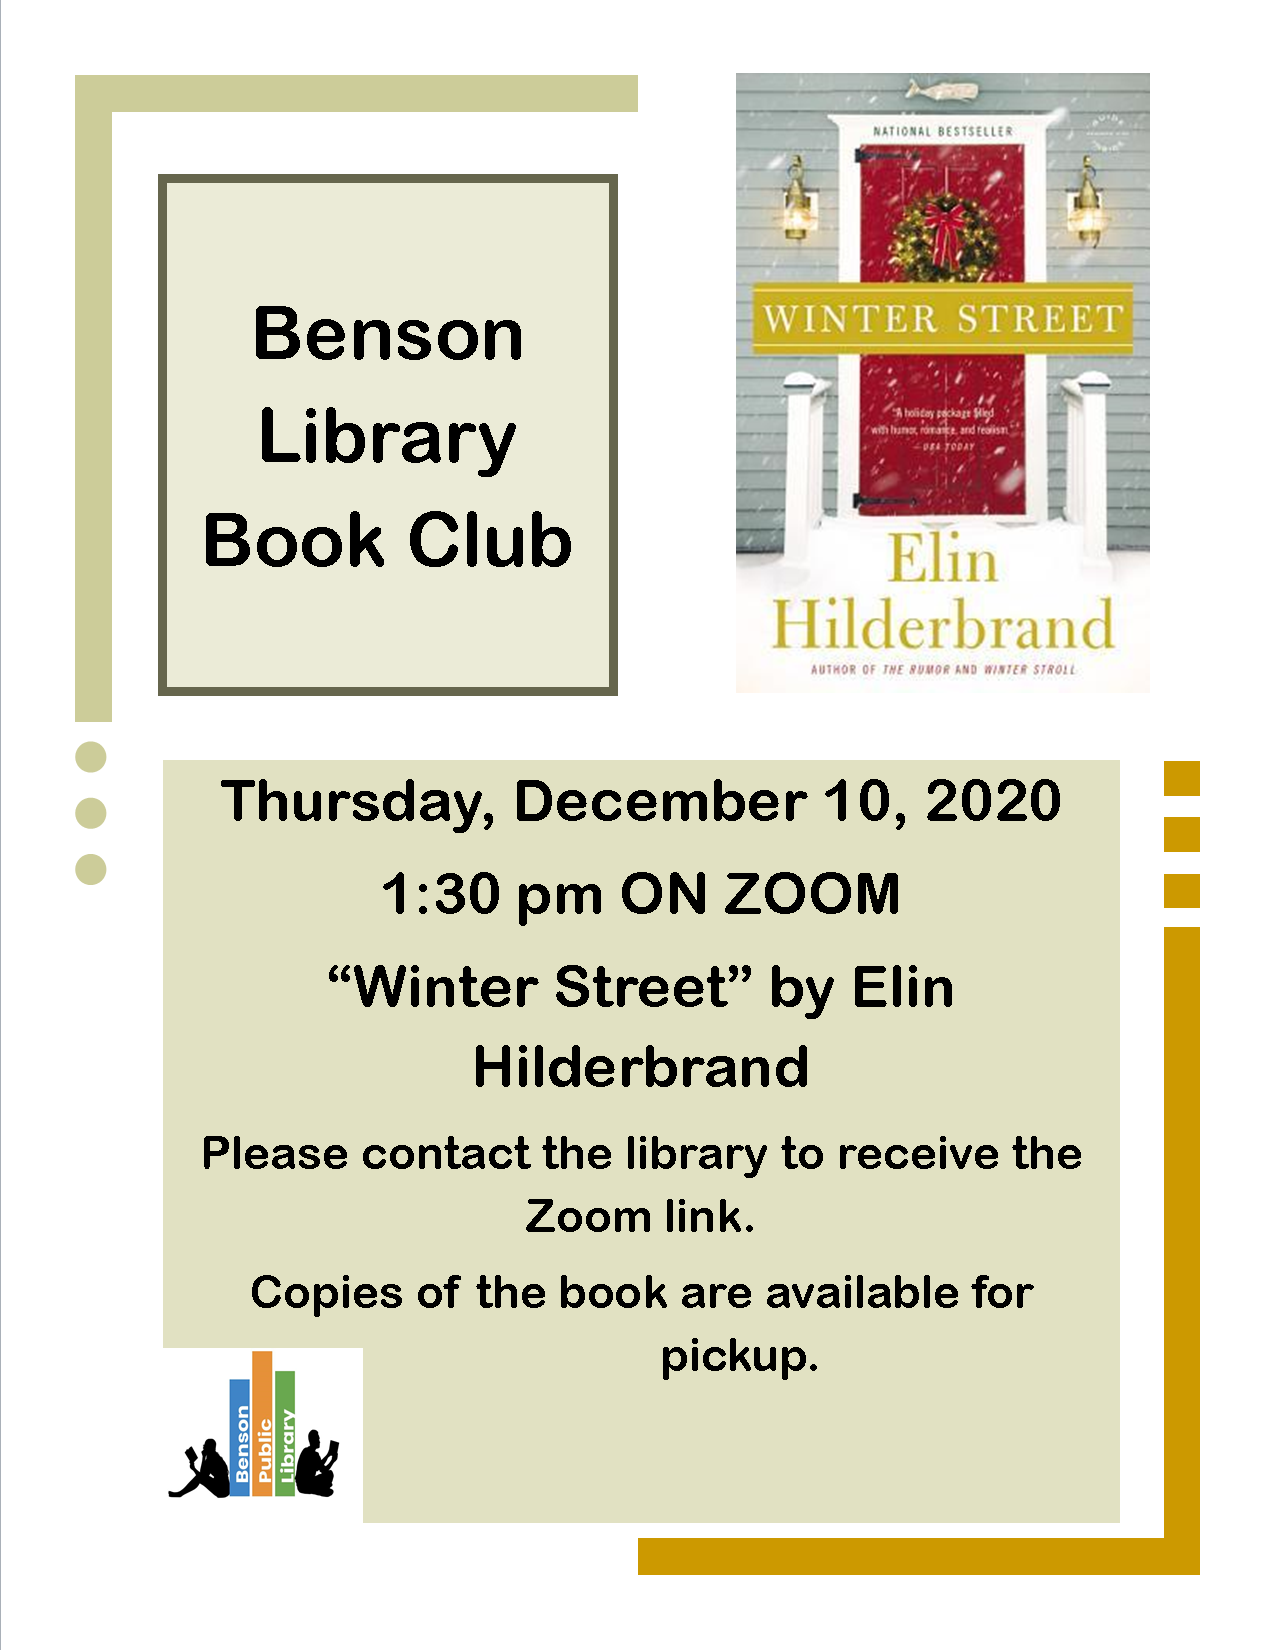 Our December Book Club will meet digitally over Zoom at 1:30 pm. The book is 'Winter Street' by Elin Hilderbrand. Stop by the library to receive book and to receive Zoom link.